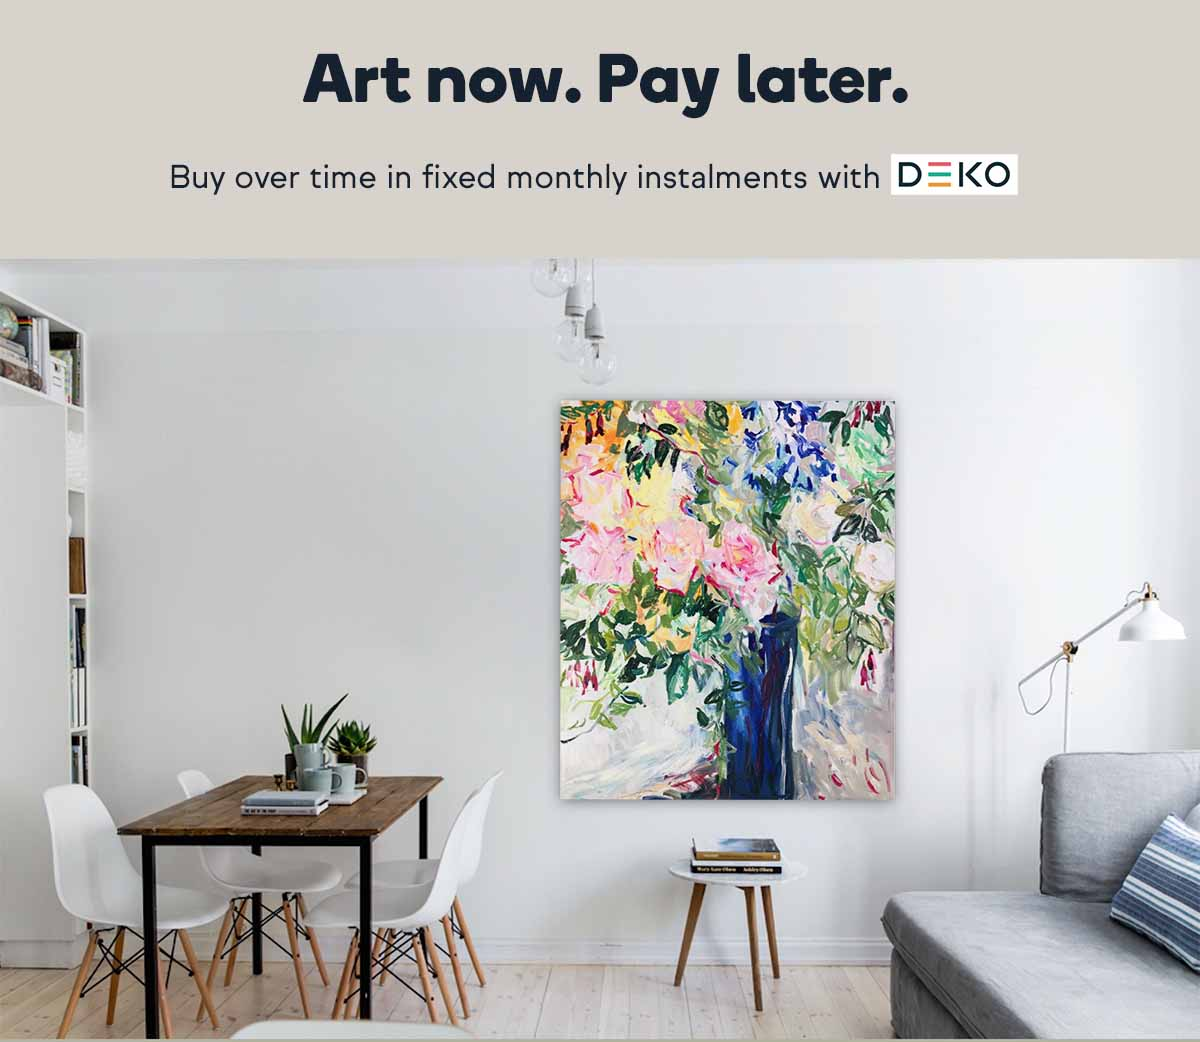 Buy art now and pay later with Deko